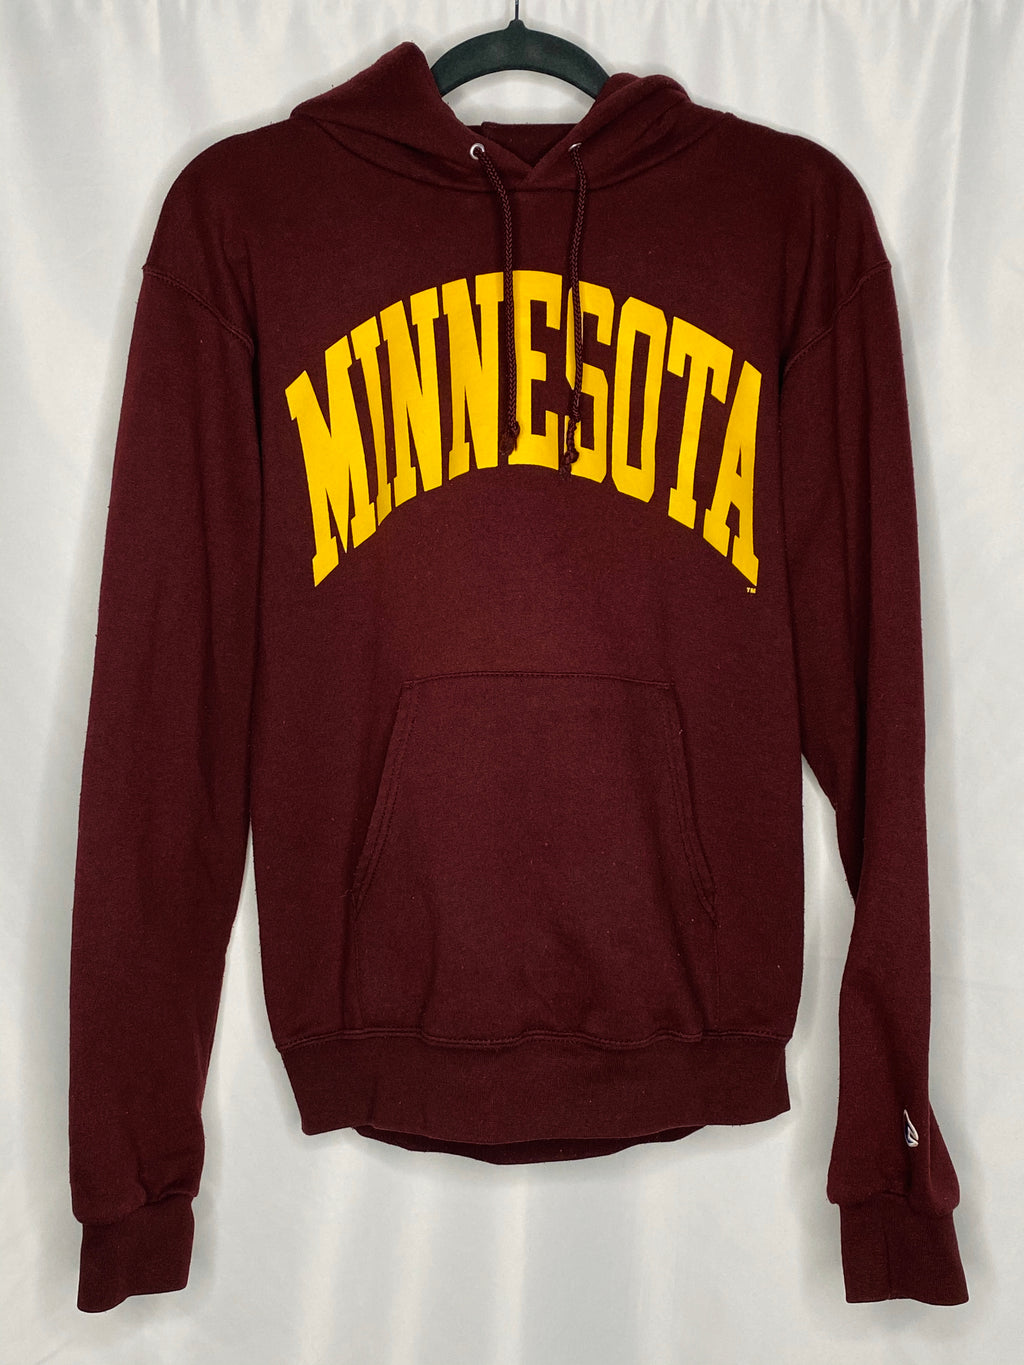 University of Minnesota Champion Sweatshirt